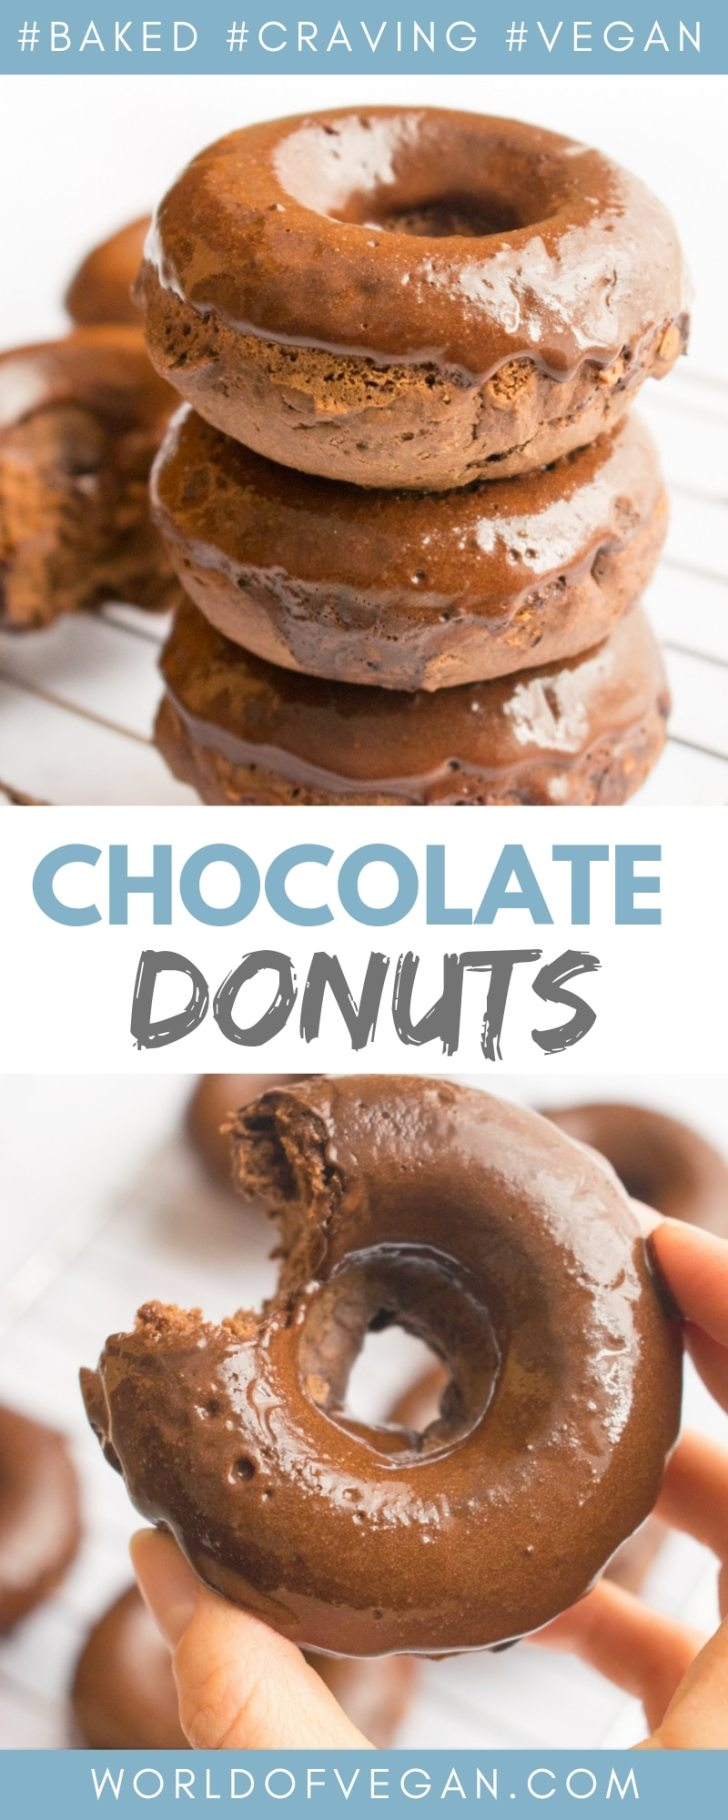 Double Chocolate Donuts—Made Vegan!   World of Vegan   #donuts #vegan #chocolate #dessert #party #worldofvegan